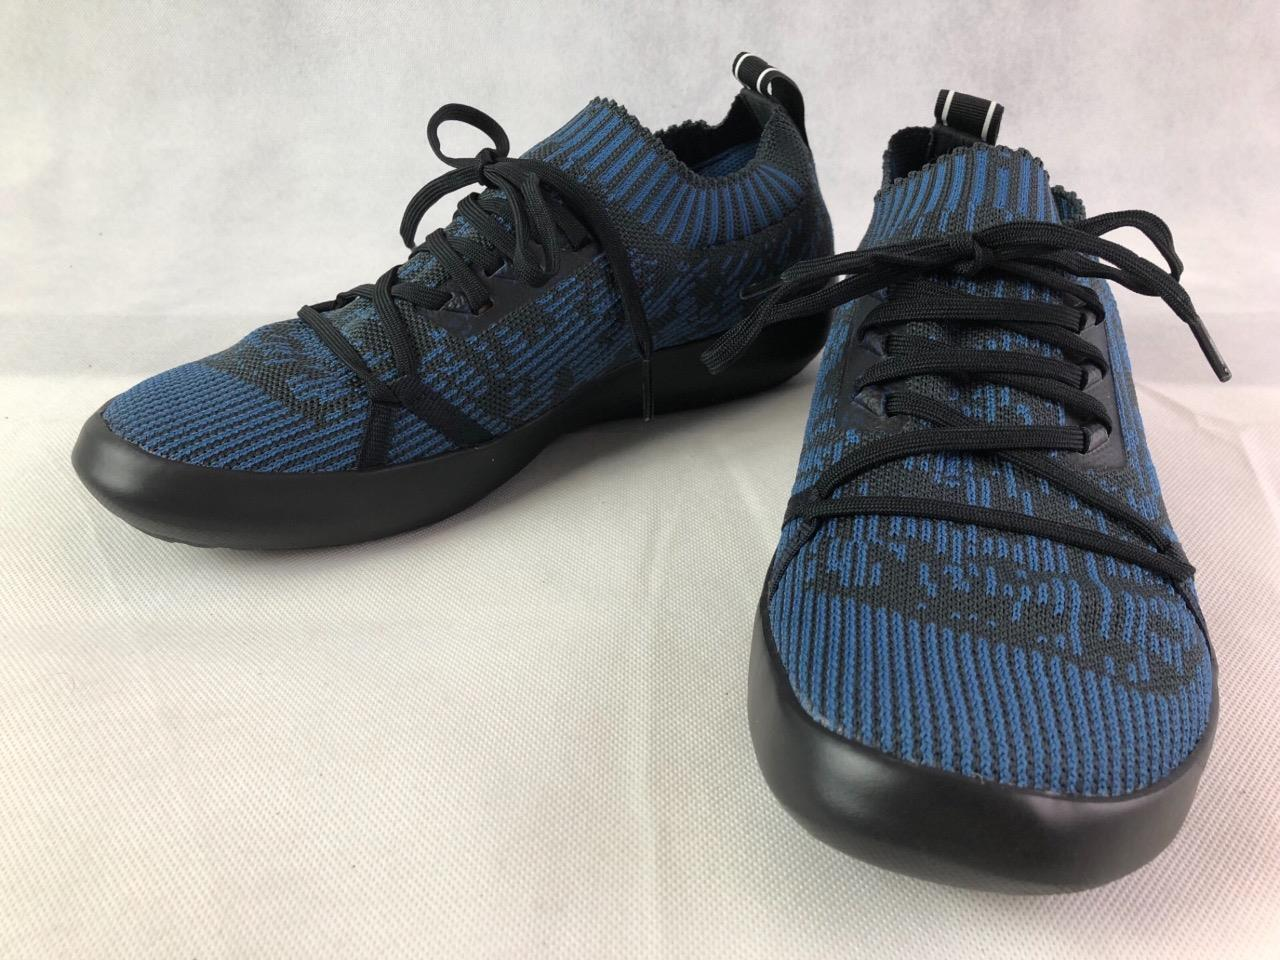 ADIDAS TEREX DLX PARLAY BOAT DA8848 OUTDOOR CORE blueE BREATHABLE SHOES 9 NEW